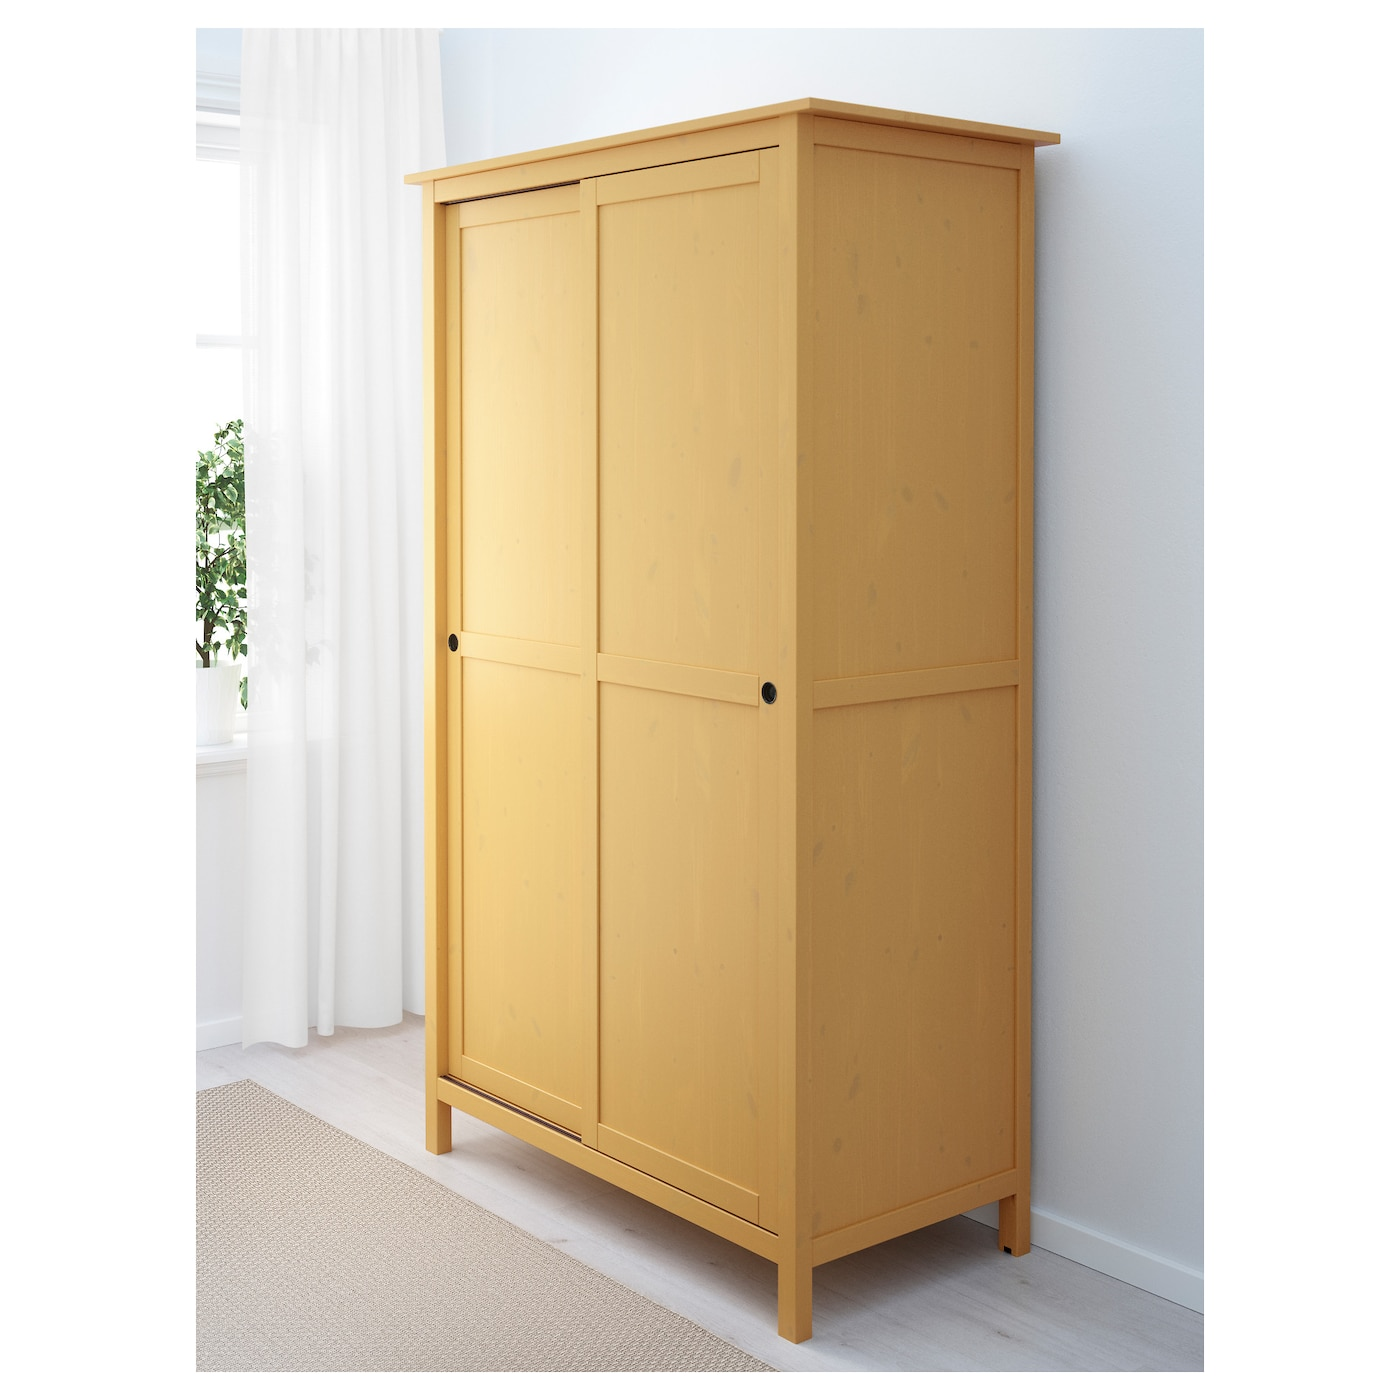 Hemnes wardrobe with 2 sliding doors yellow 120x197 cm ikea - Ikea placard coulissant ...